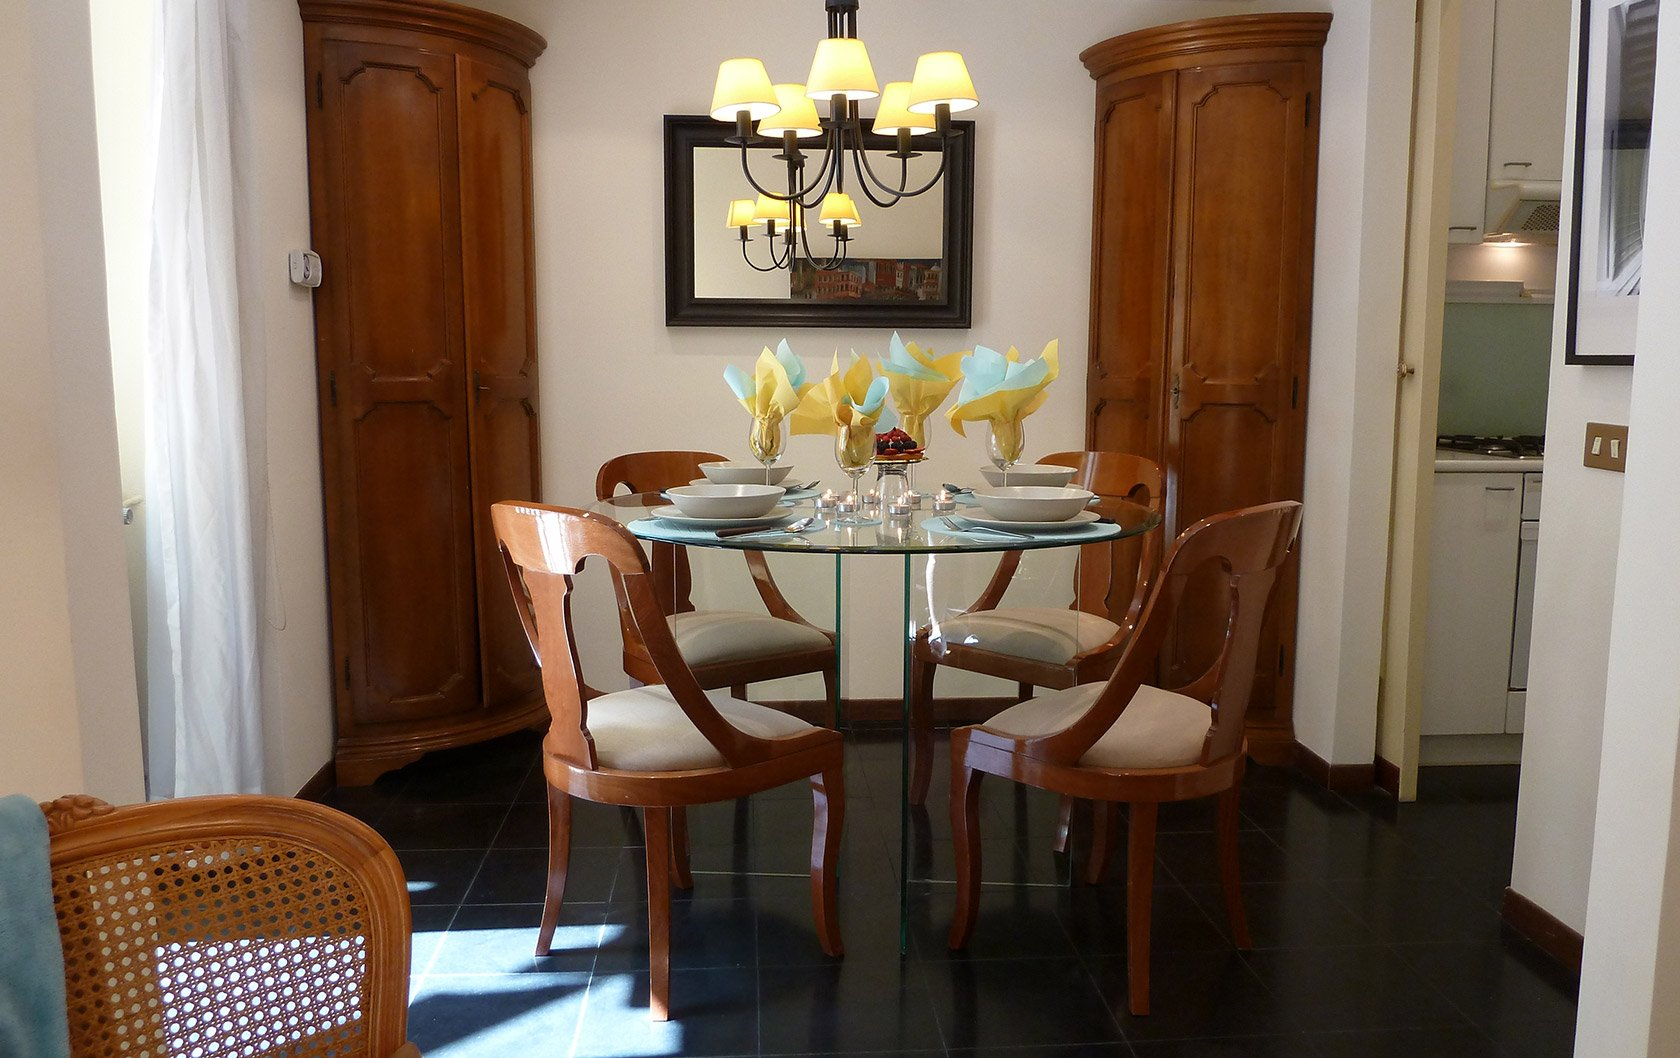 La dolce vita an apartment in rome italy paris perfect - Office tourisme italien a paris ...